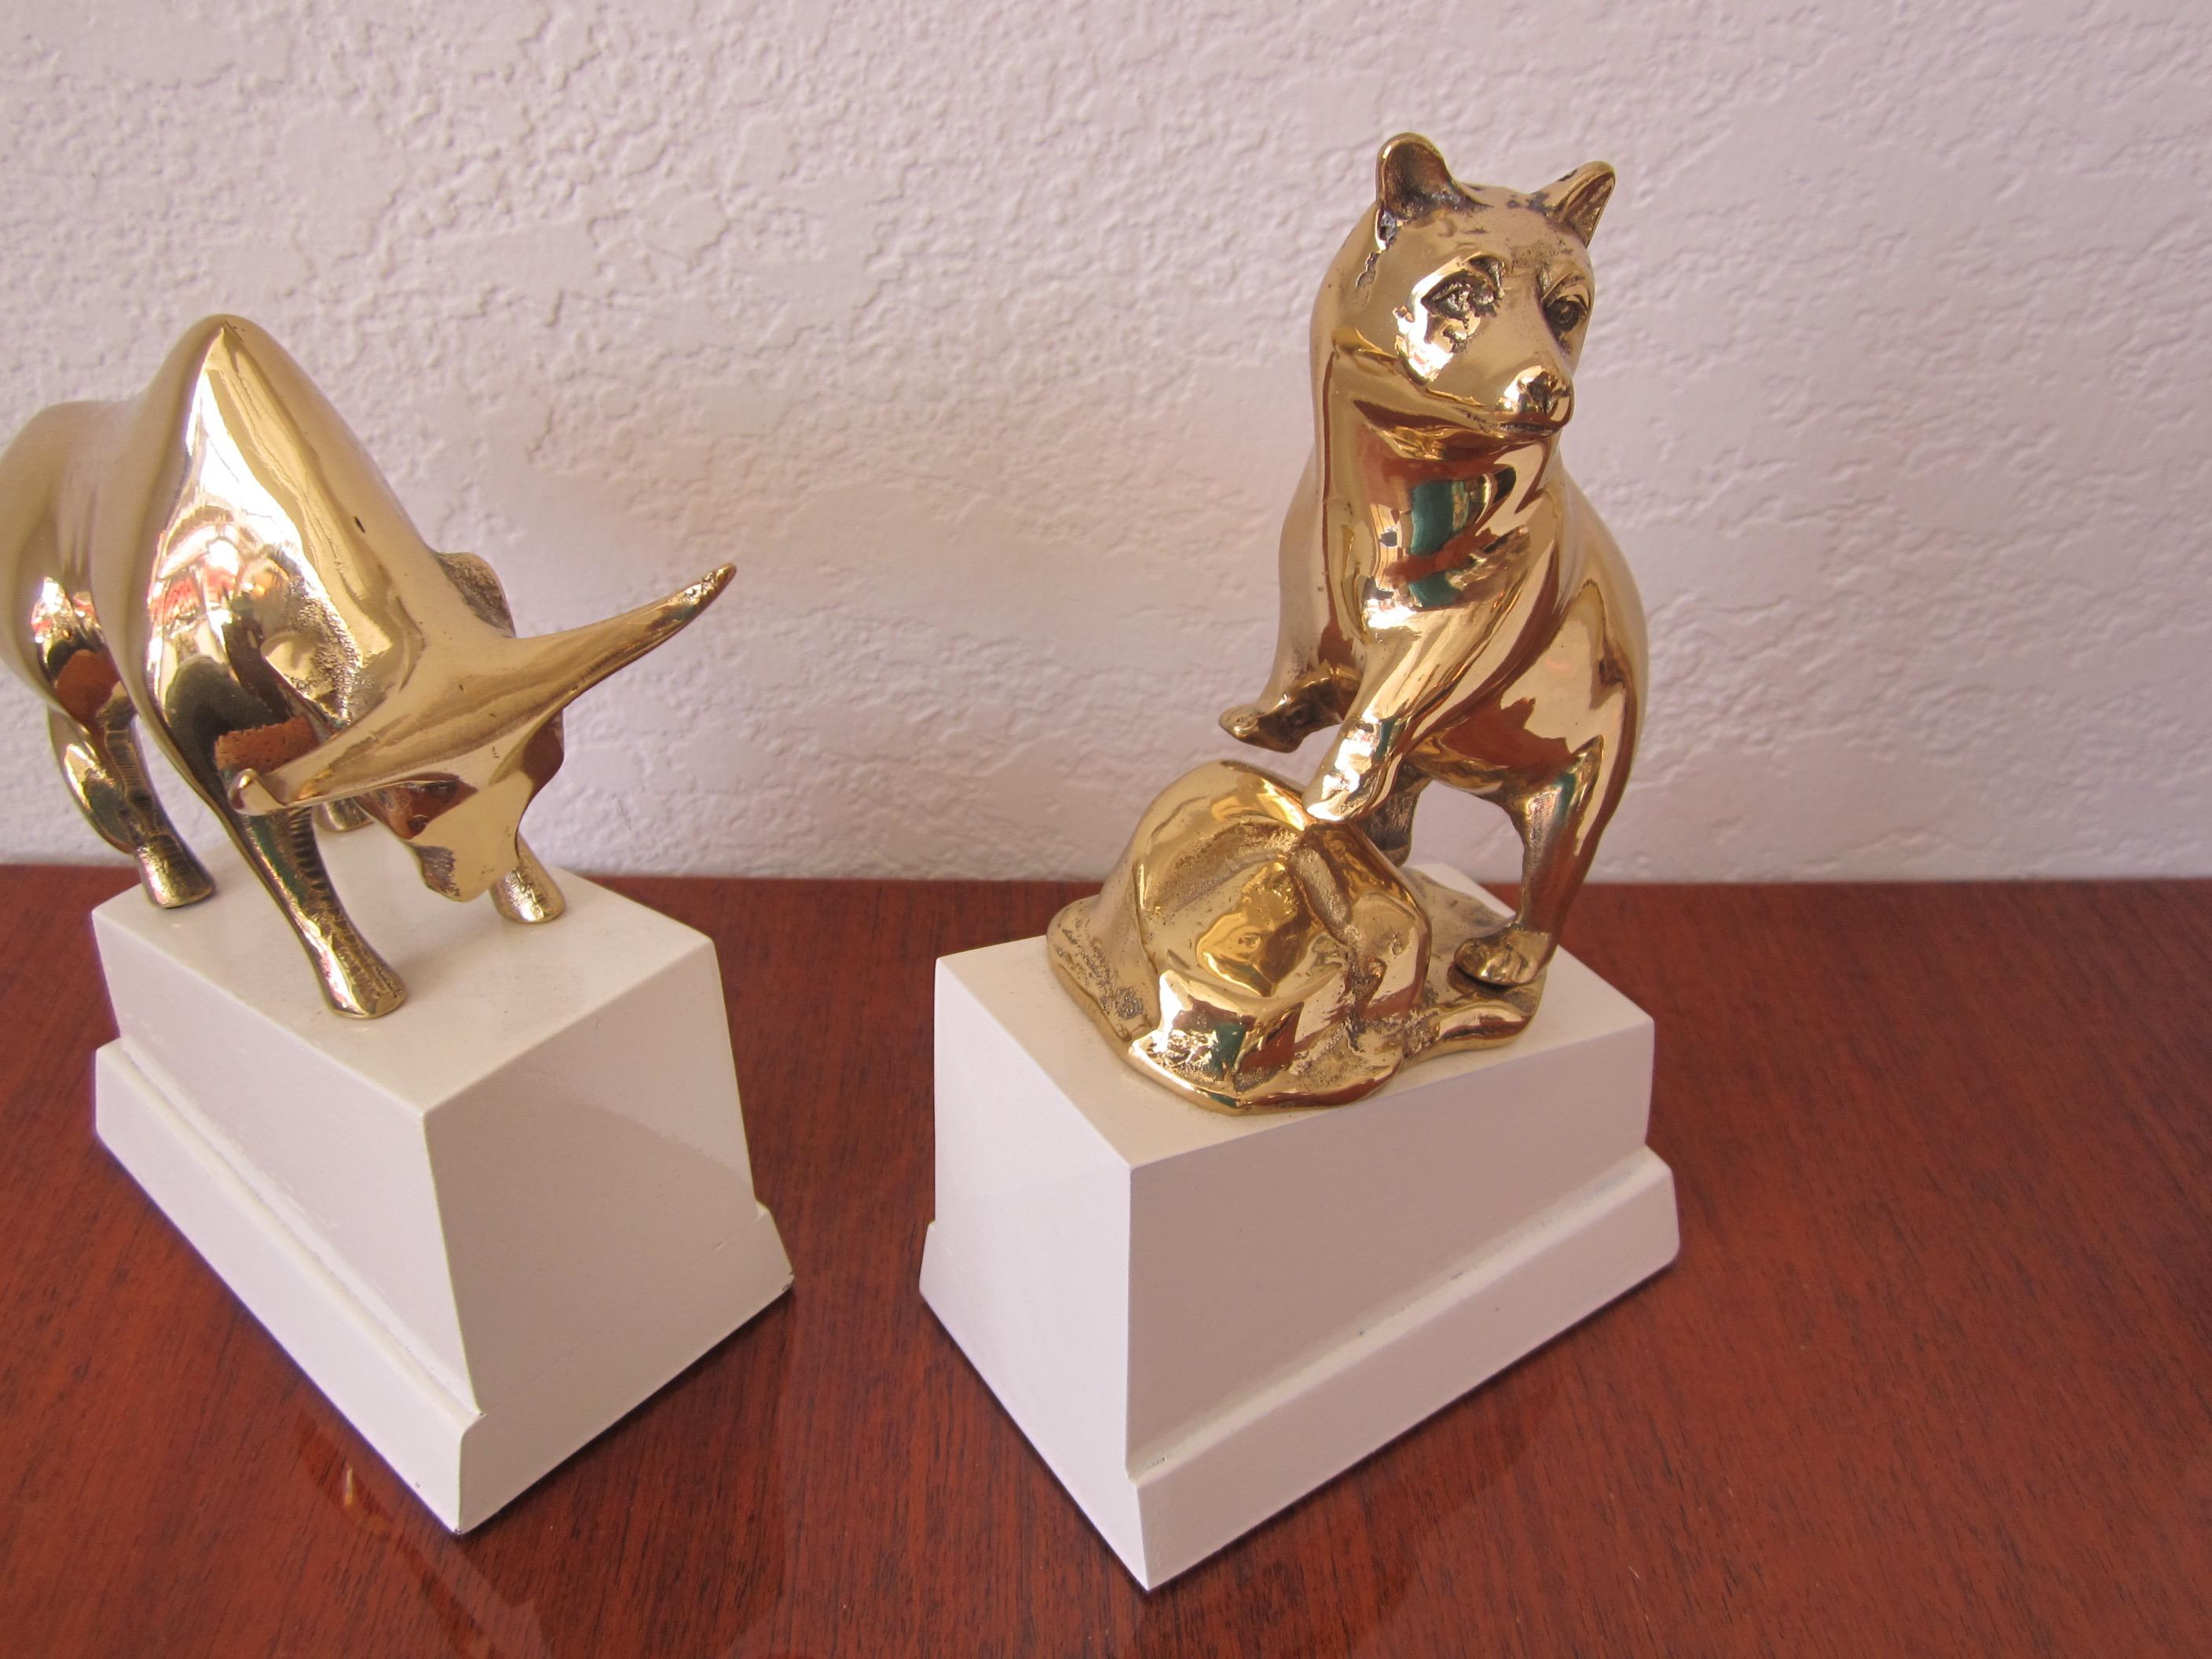 Polished Brass Bull And Standing Bear Bookends On Lacquered Blocks Chairish  Bear And Bull Bookends